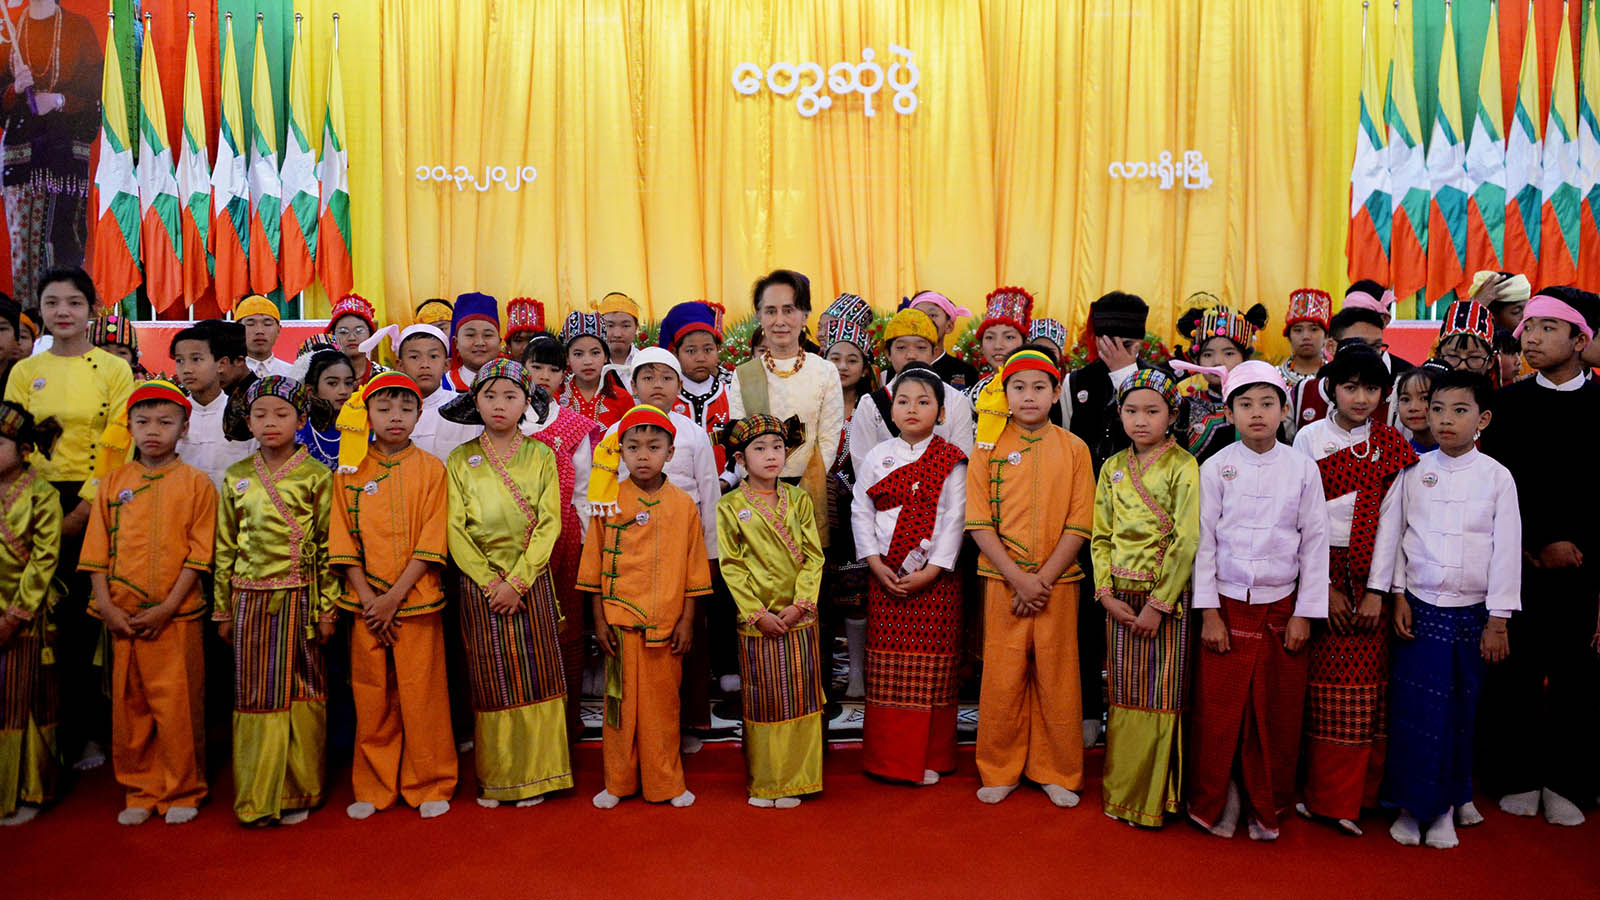 State Counsellor Daw Aung San Suu Kyi poses for group photo together with children in Lashio. Photo: MNA